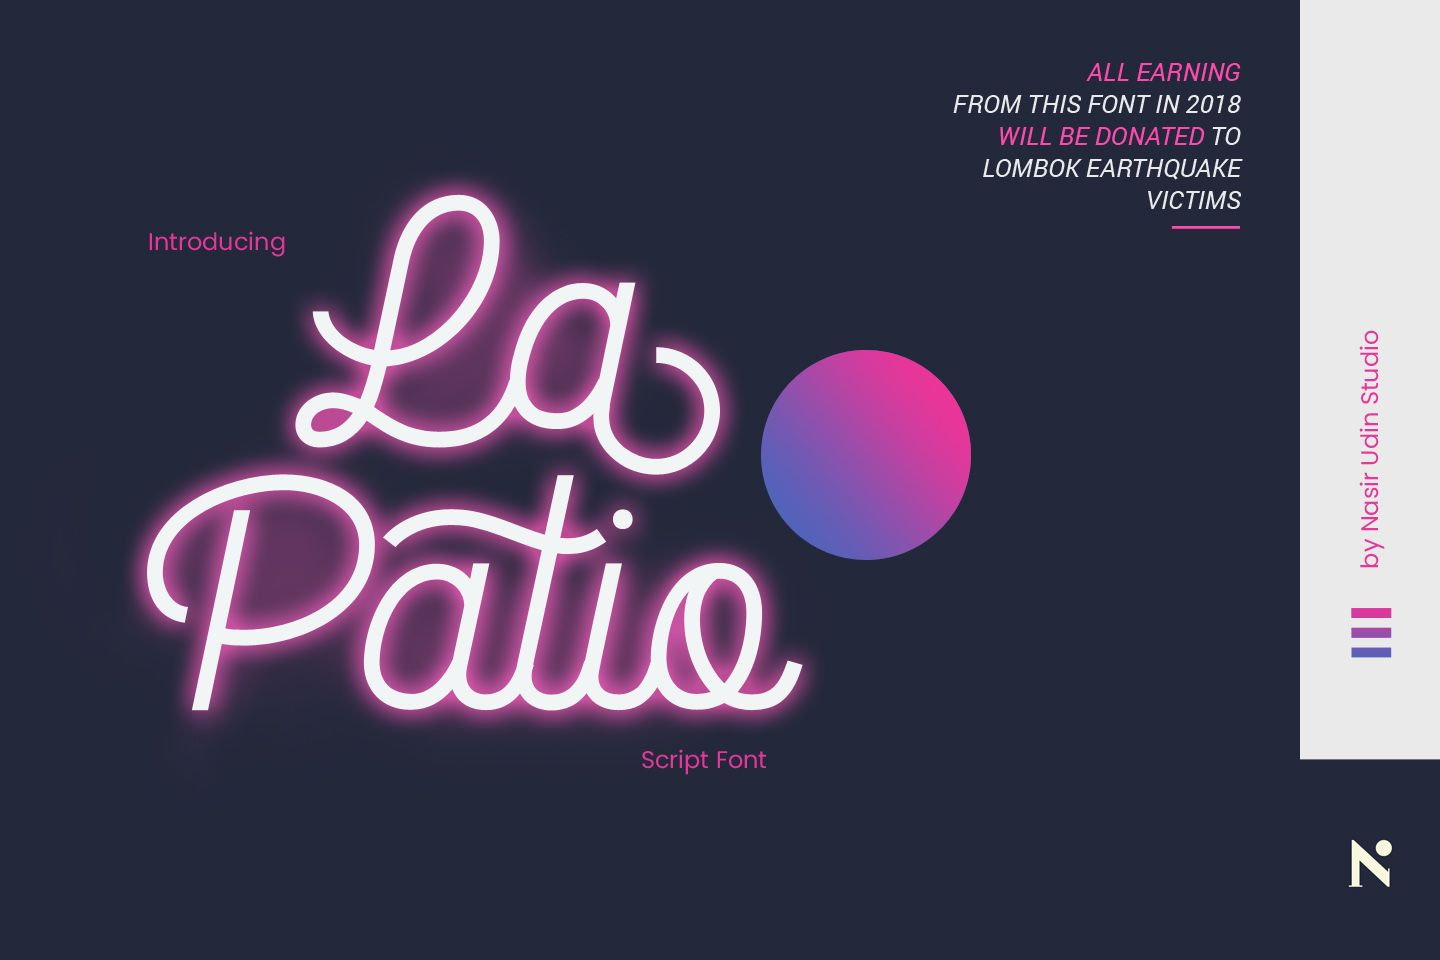 The La Patio is a monoline script font which looks like shoelaces. It's great for use as a neon sign....